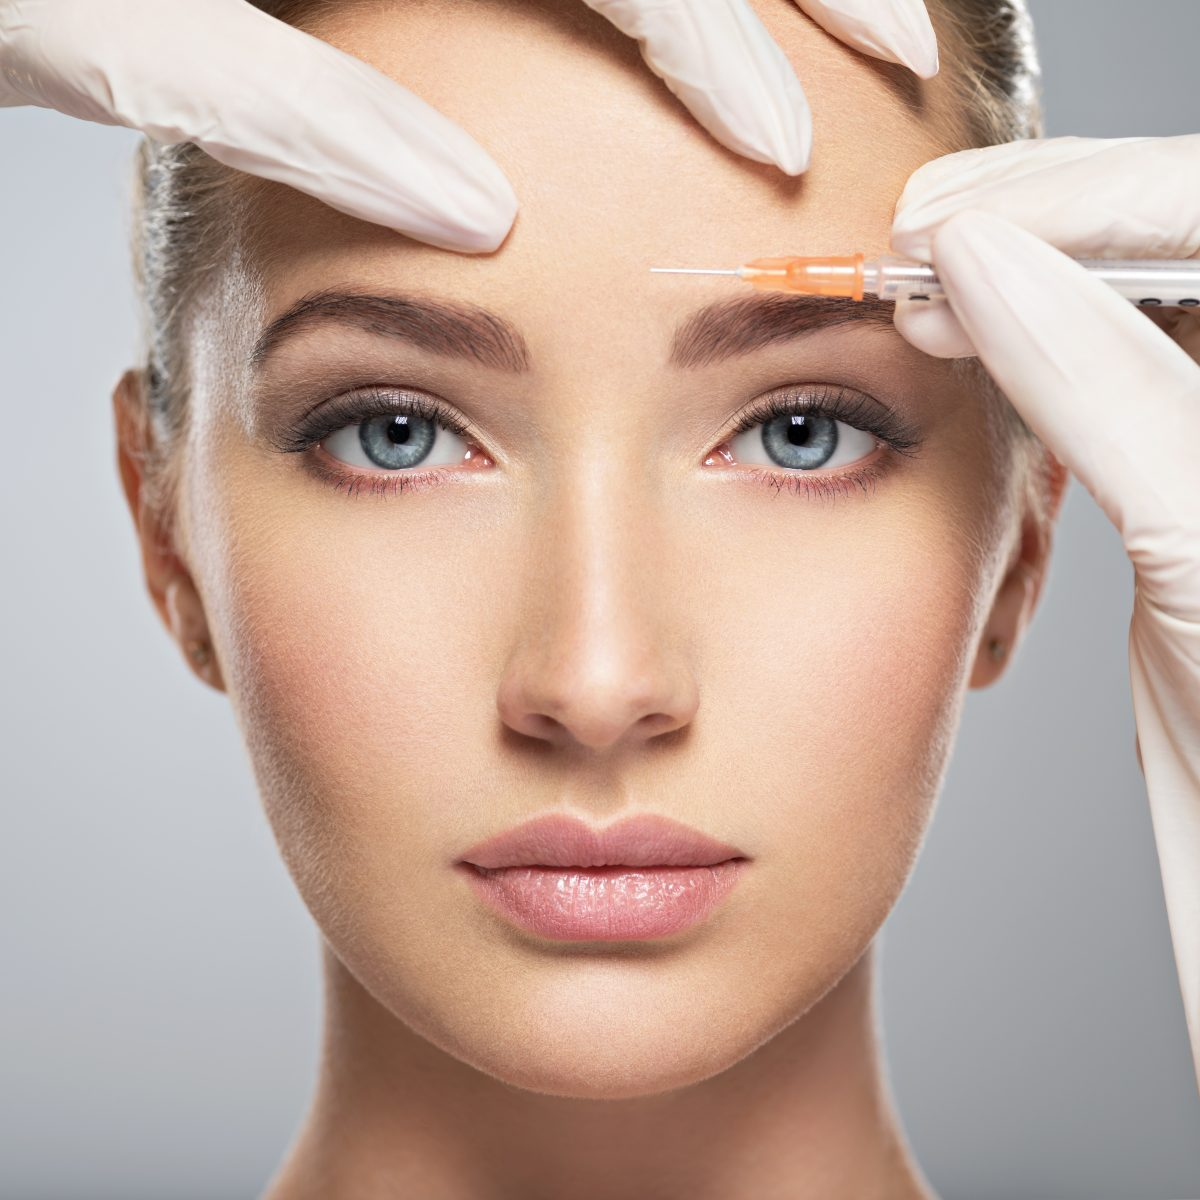 How long does it take to recover from a Botox or Dysport injection?